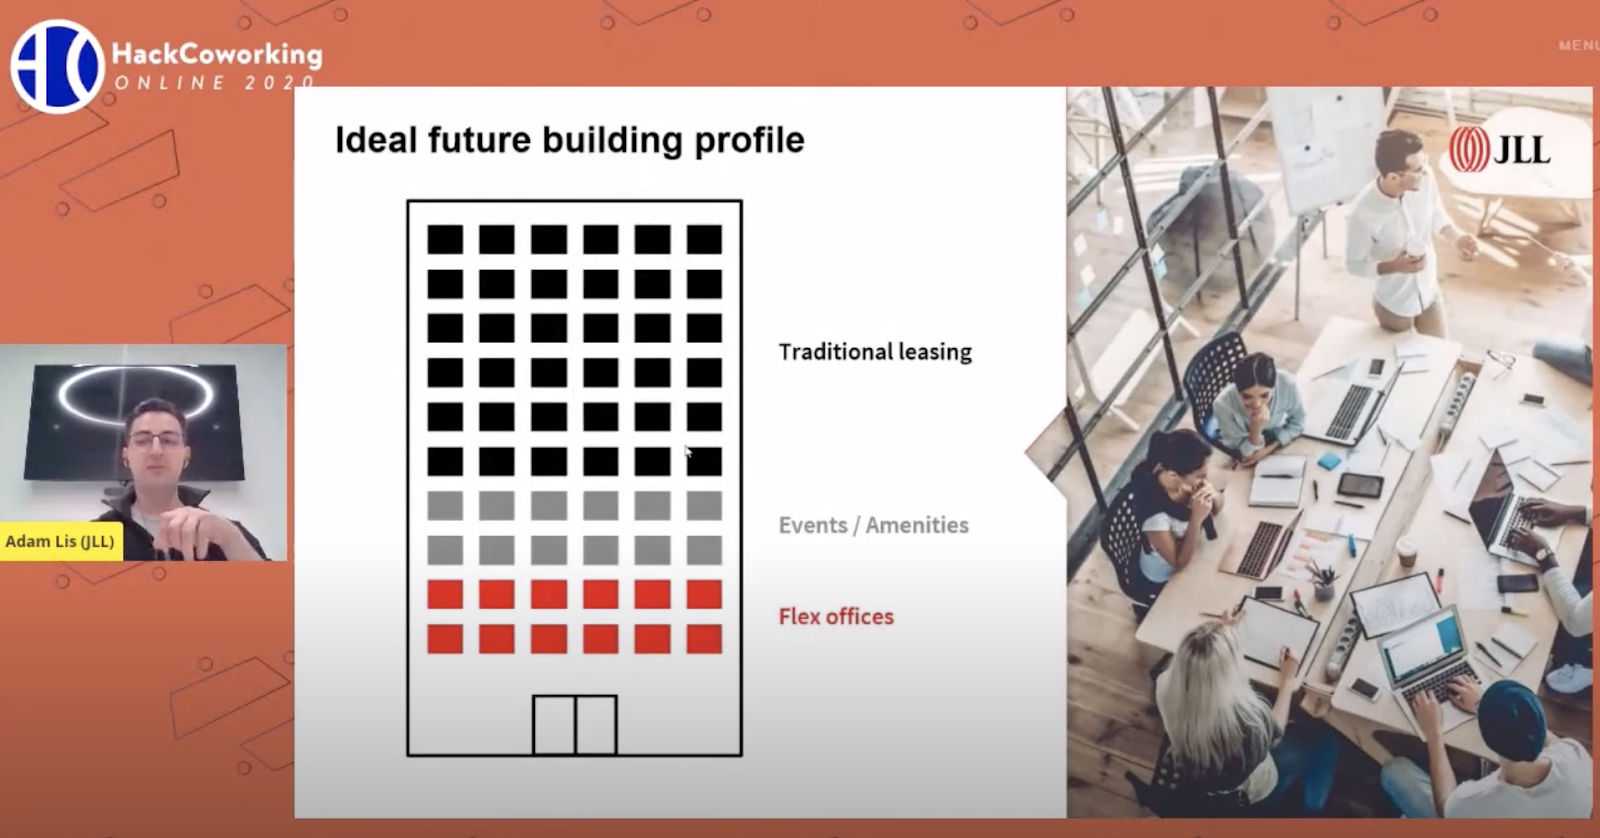 what will the future of office building look like?